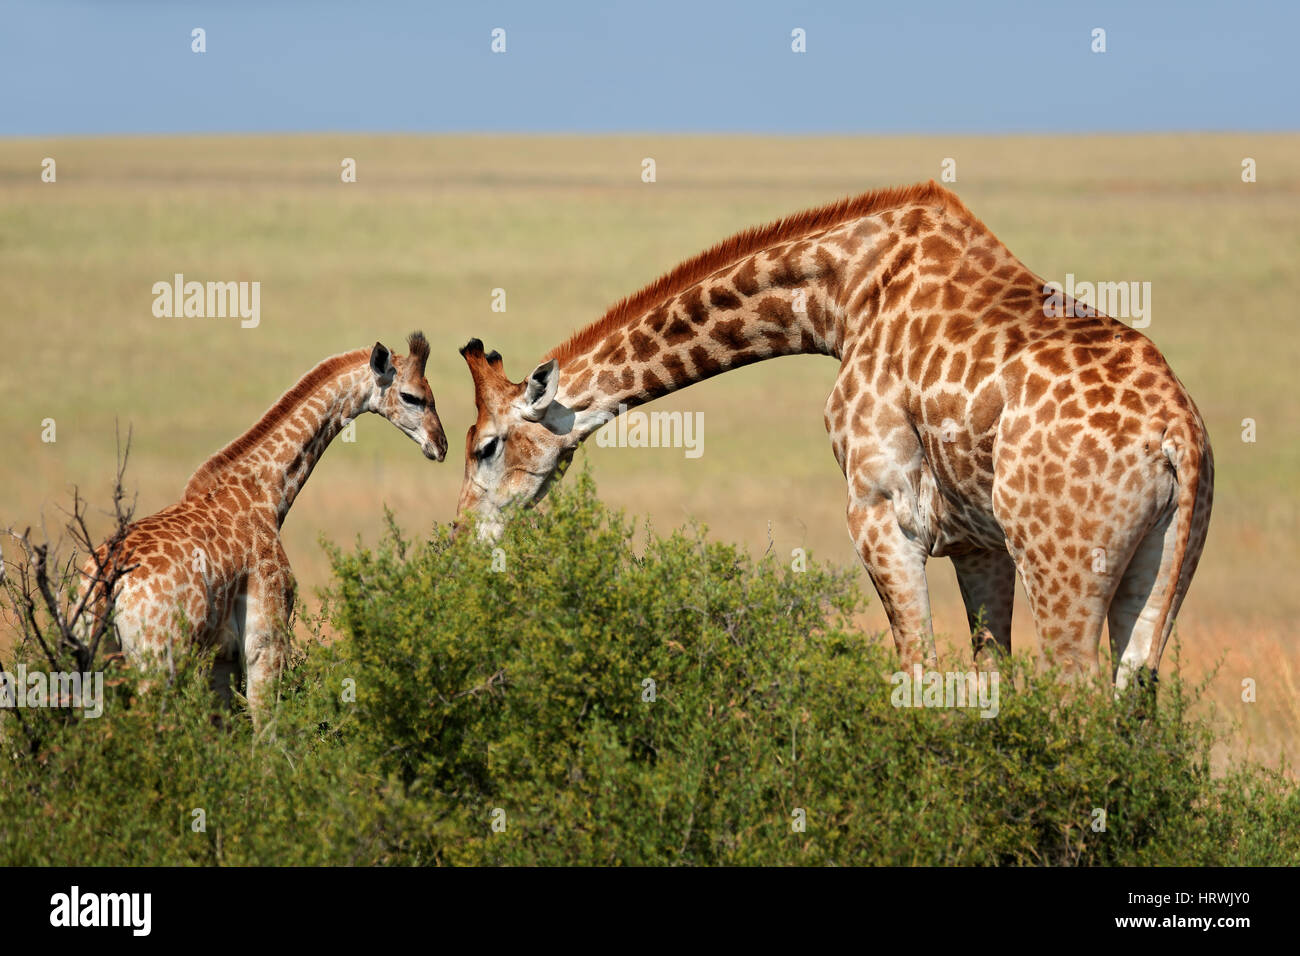 A giraffe cow (Giraffa camelopardalis) and young calf, South Africa - Stock Image